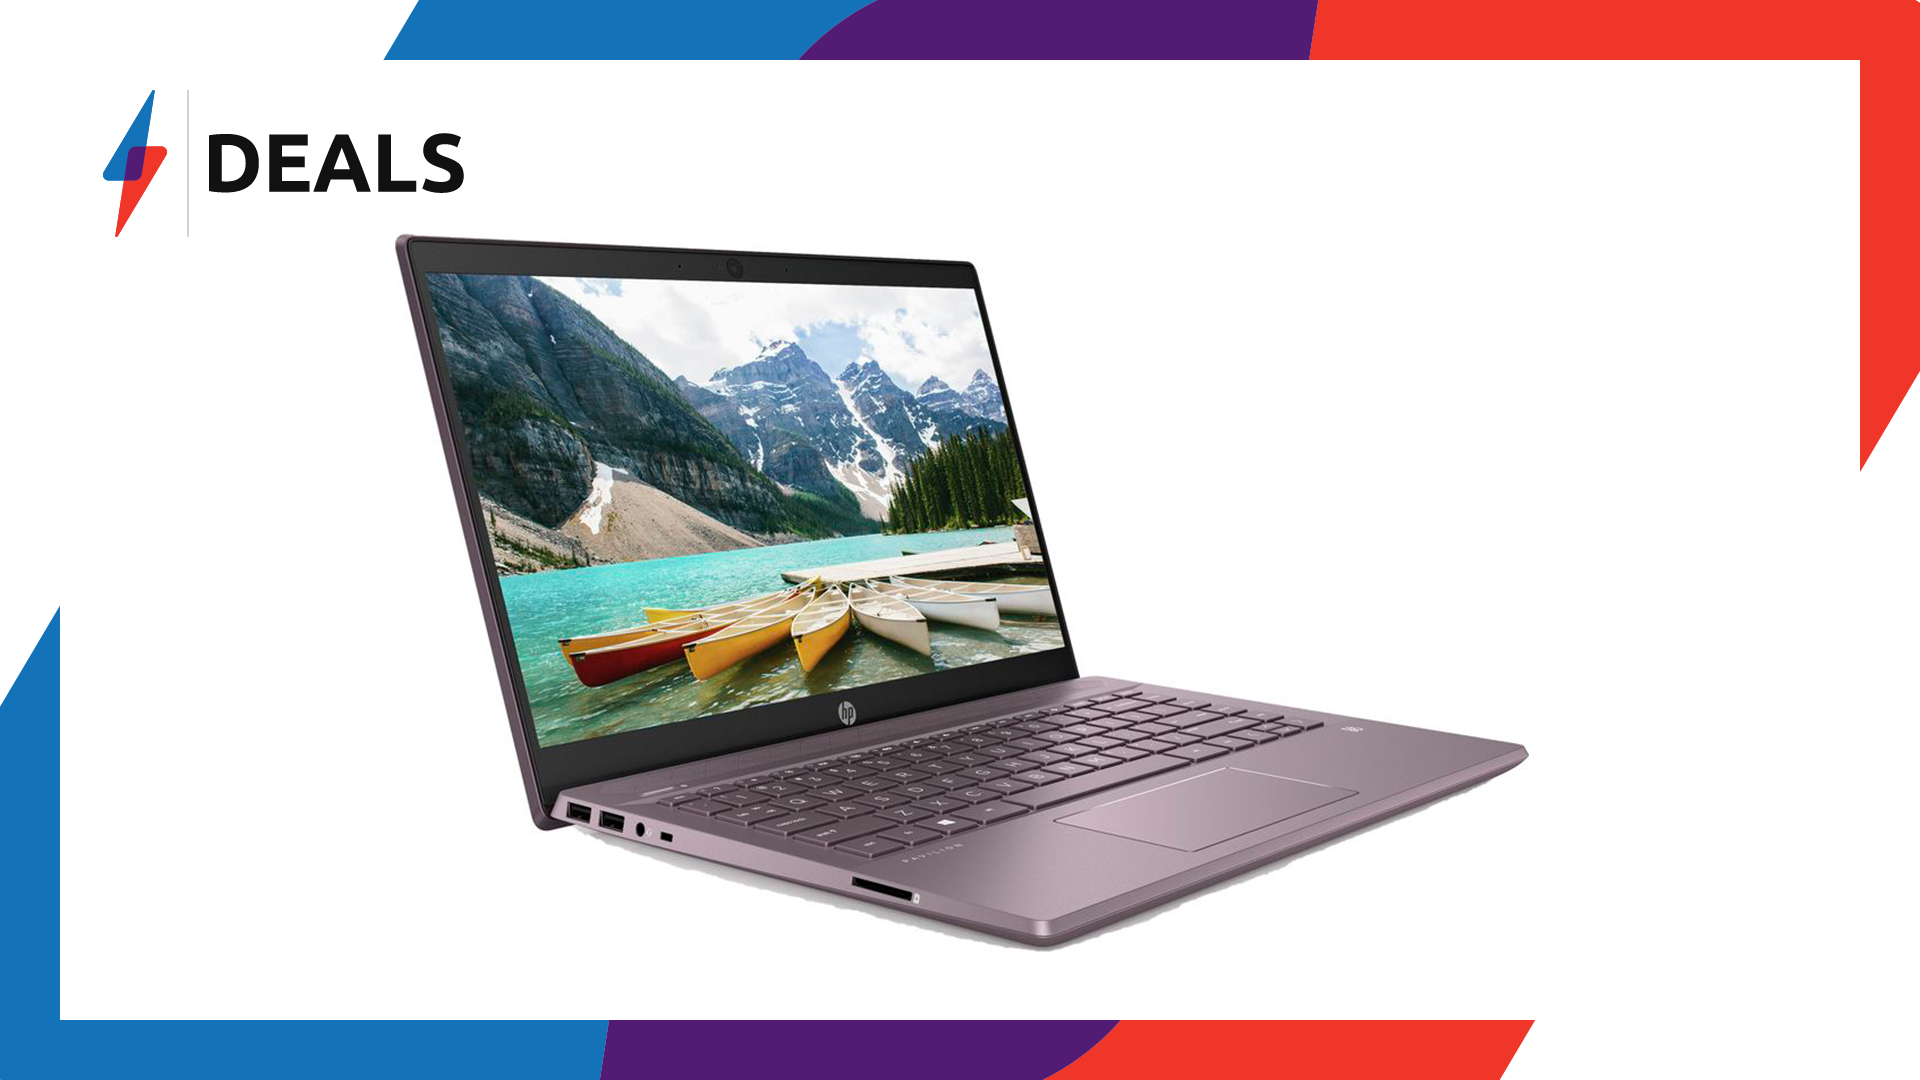 Currys Pc World Finally Has This I5 512gb Ssd Laptop For Under 500